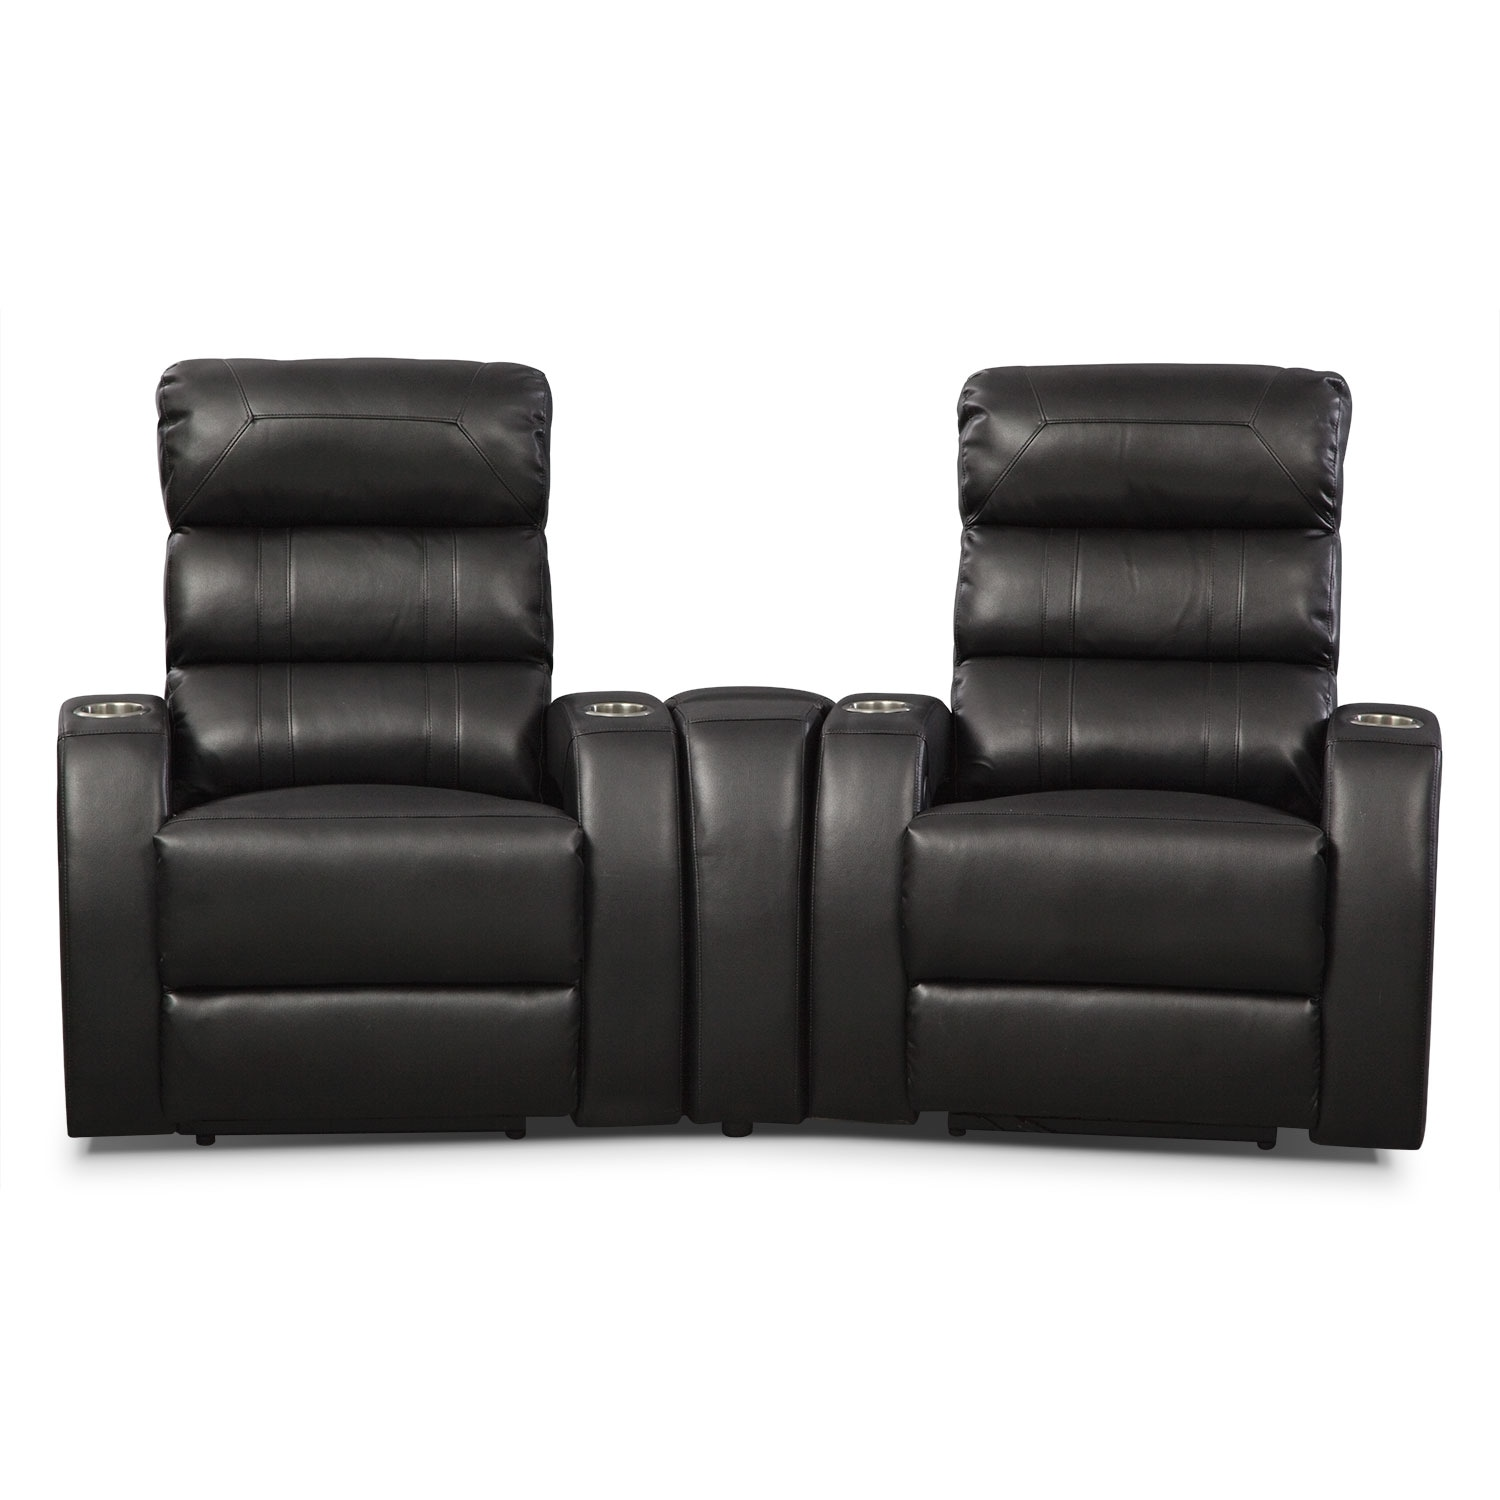 [Gemini 3 Pc. Power Home Theater Sectional]